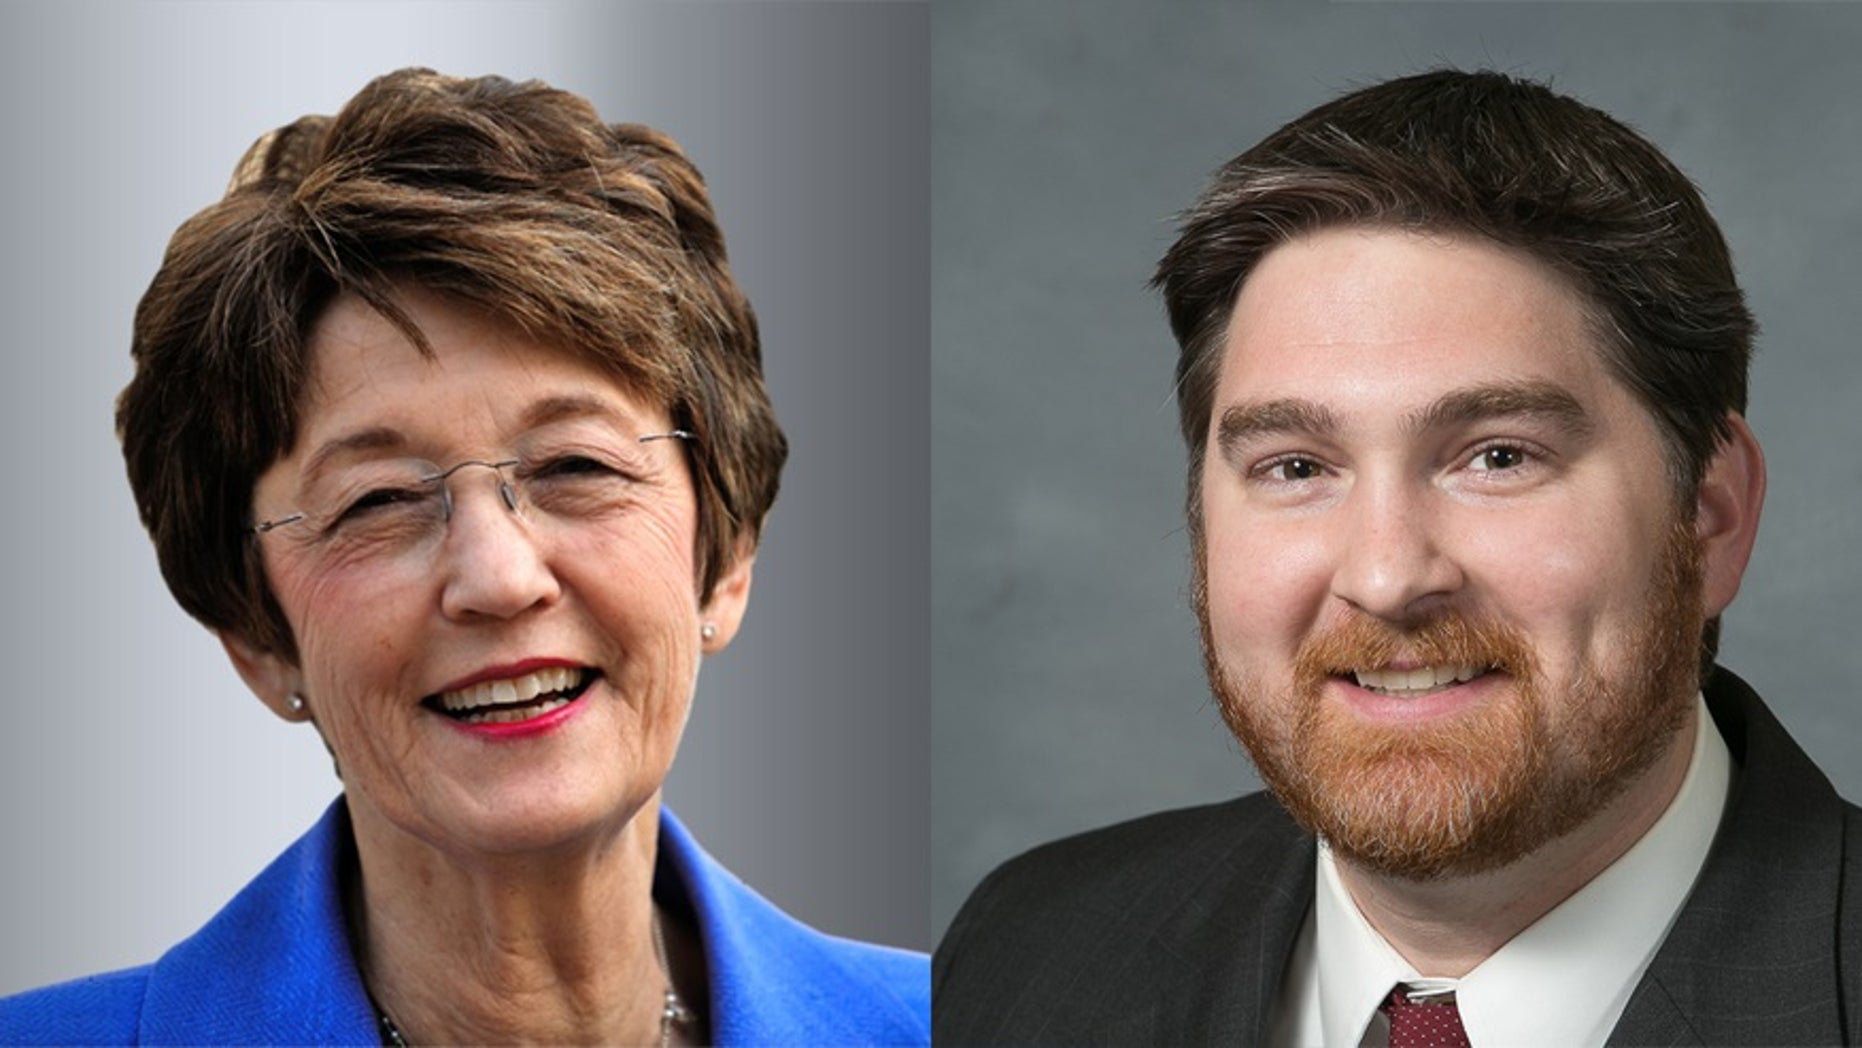 N.C. Secretary of State Elaine Marshall and N.C. State Rep. Christopher Millis.